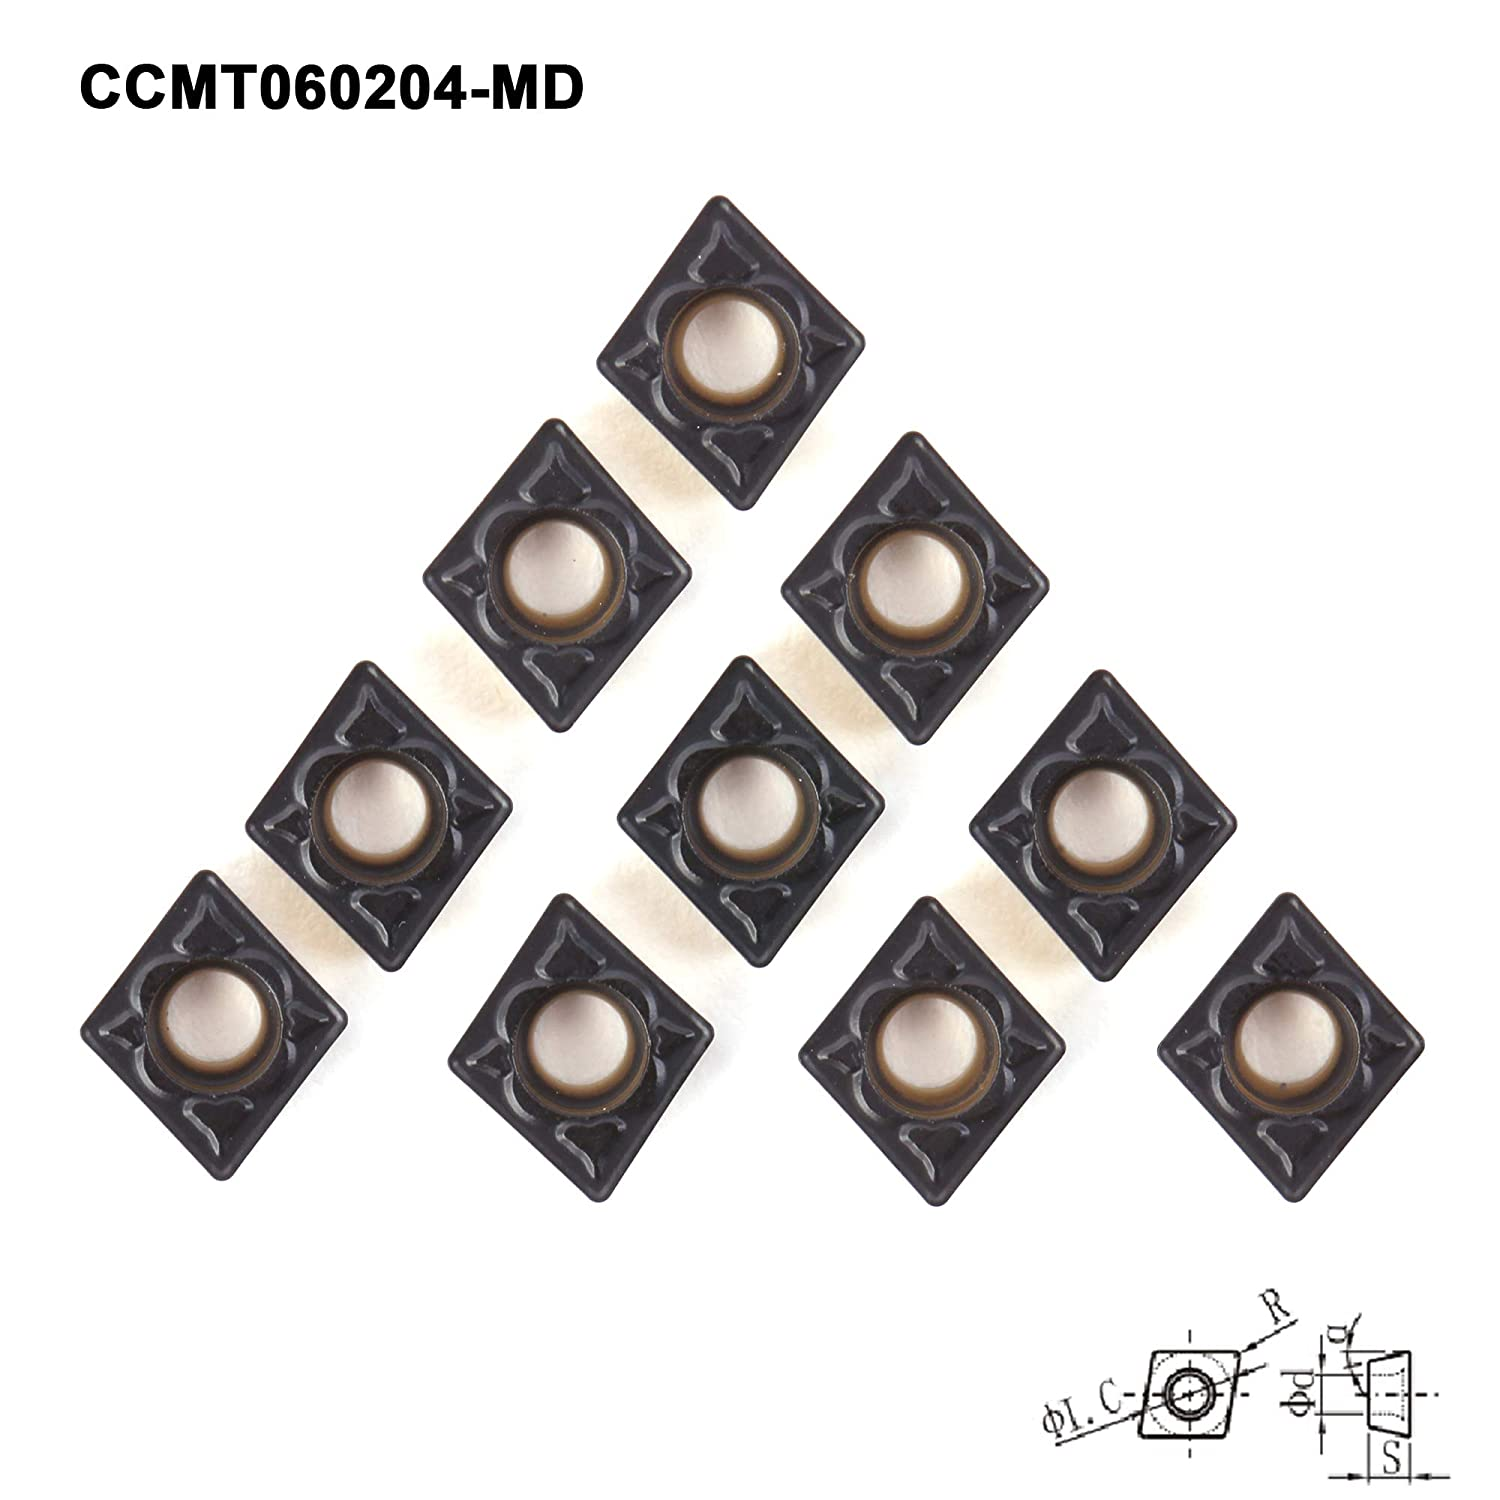 FomaSP CCMT21.51-MD CNC Indexable Lathe Turning Carbide Inserts for Steel,10pcs